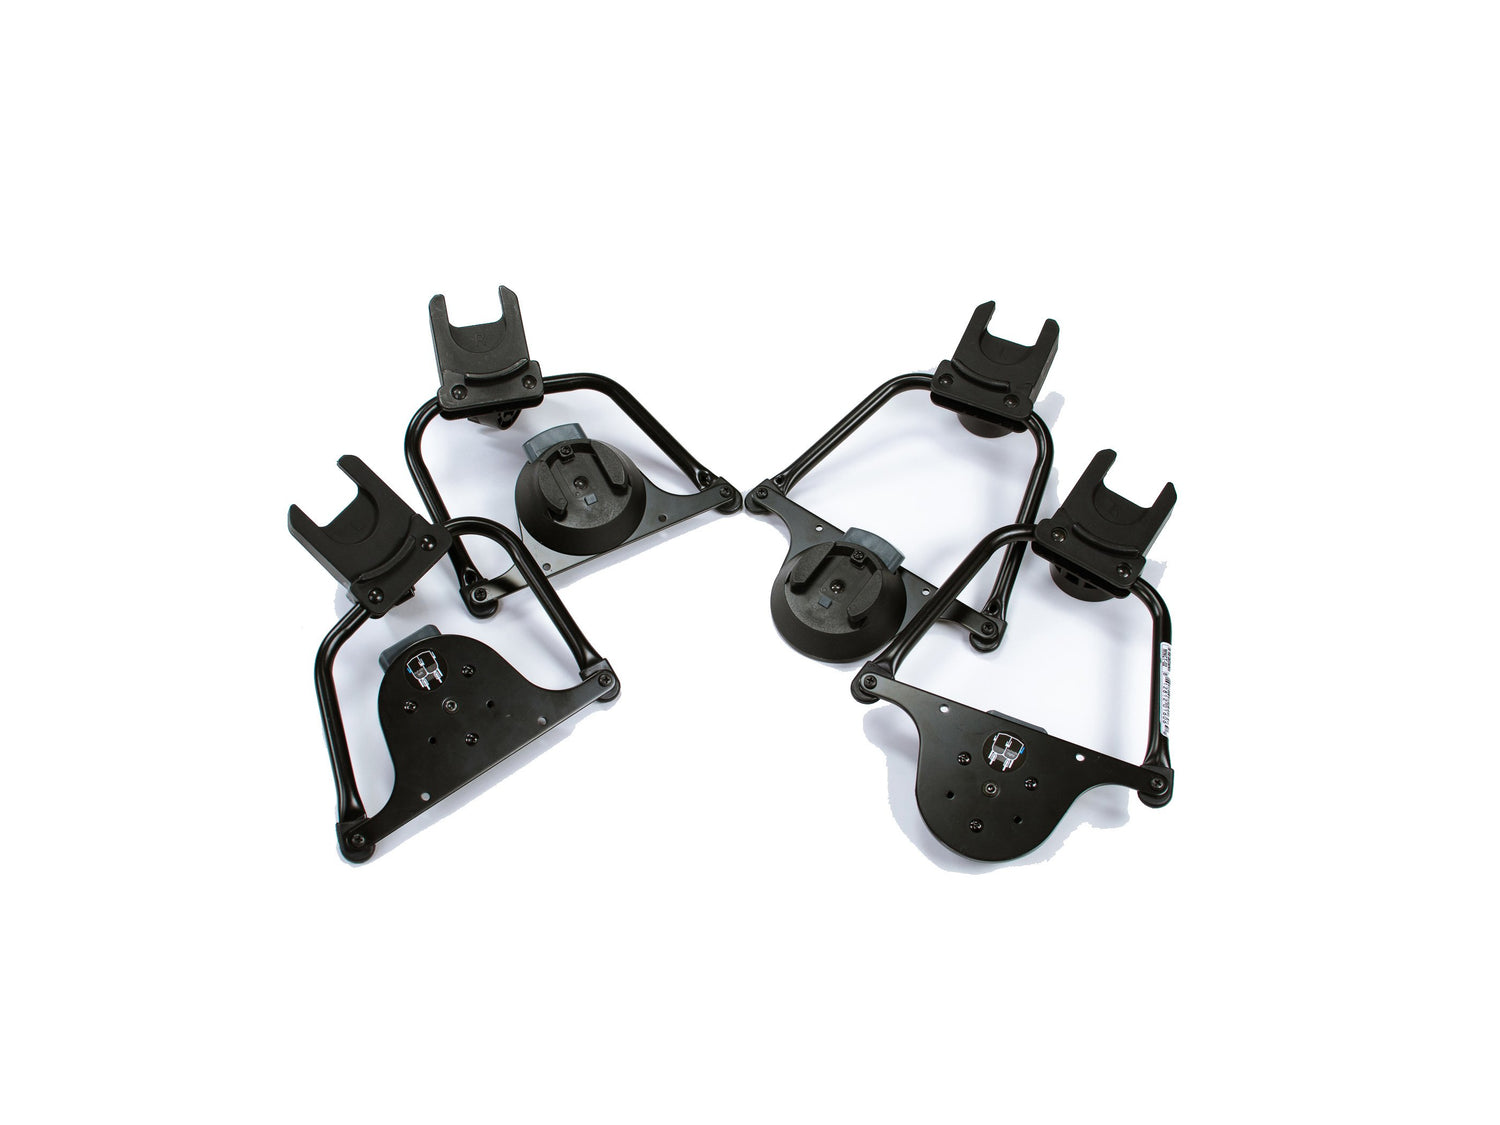 Bumbleride Indie Twin Maxi Cosi Cybex Nuna Car Seat Adapter - Set